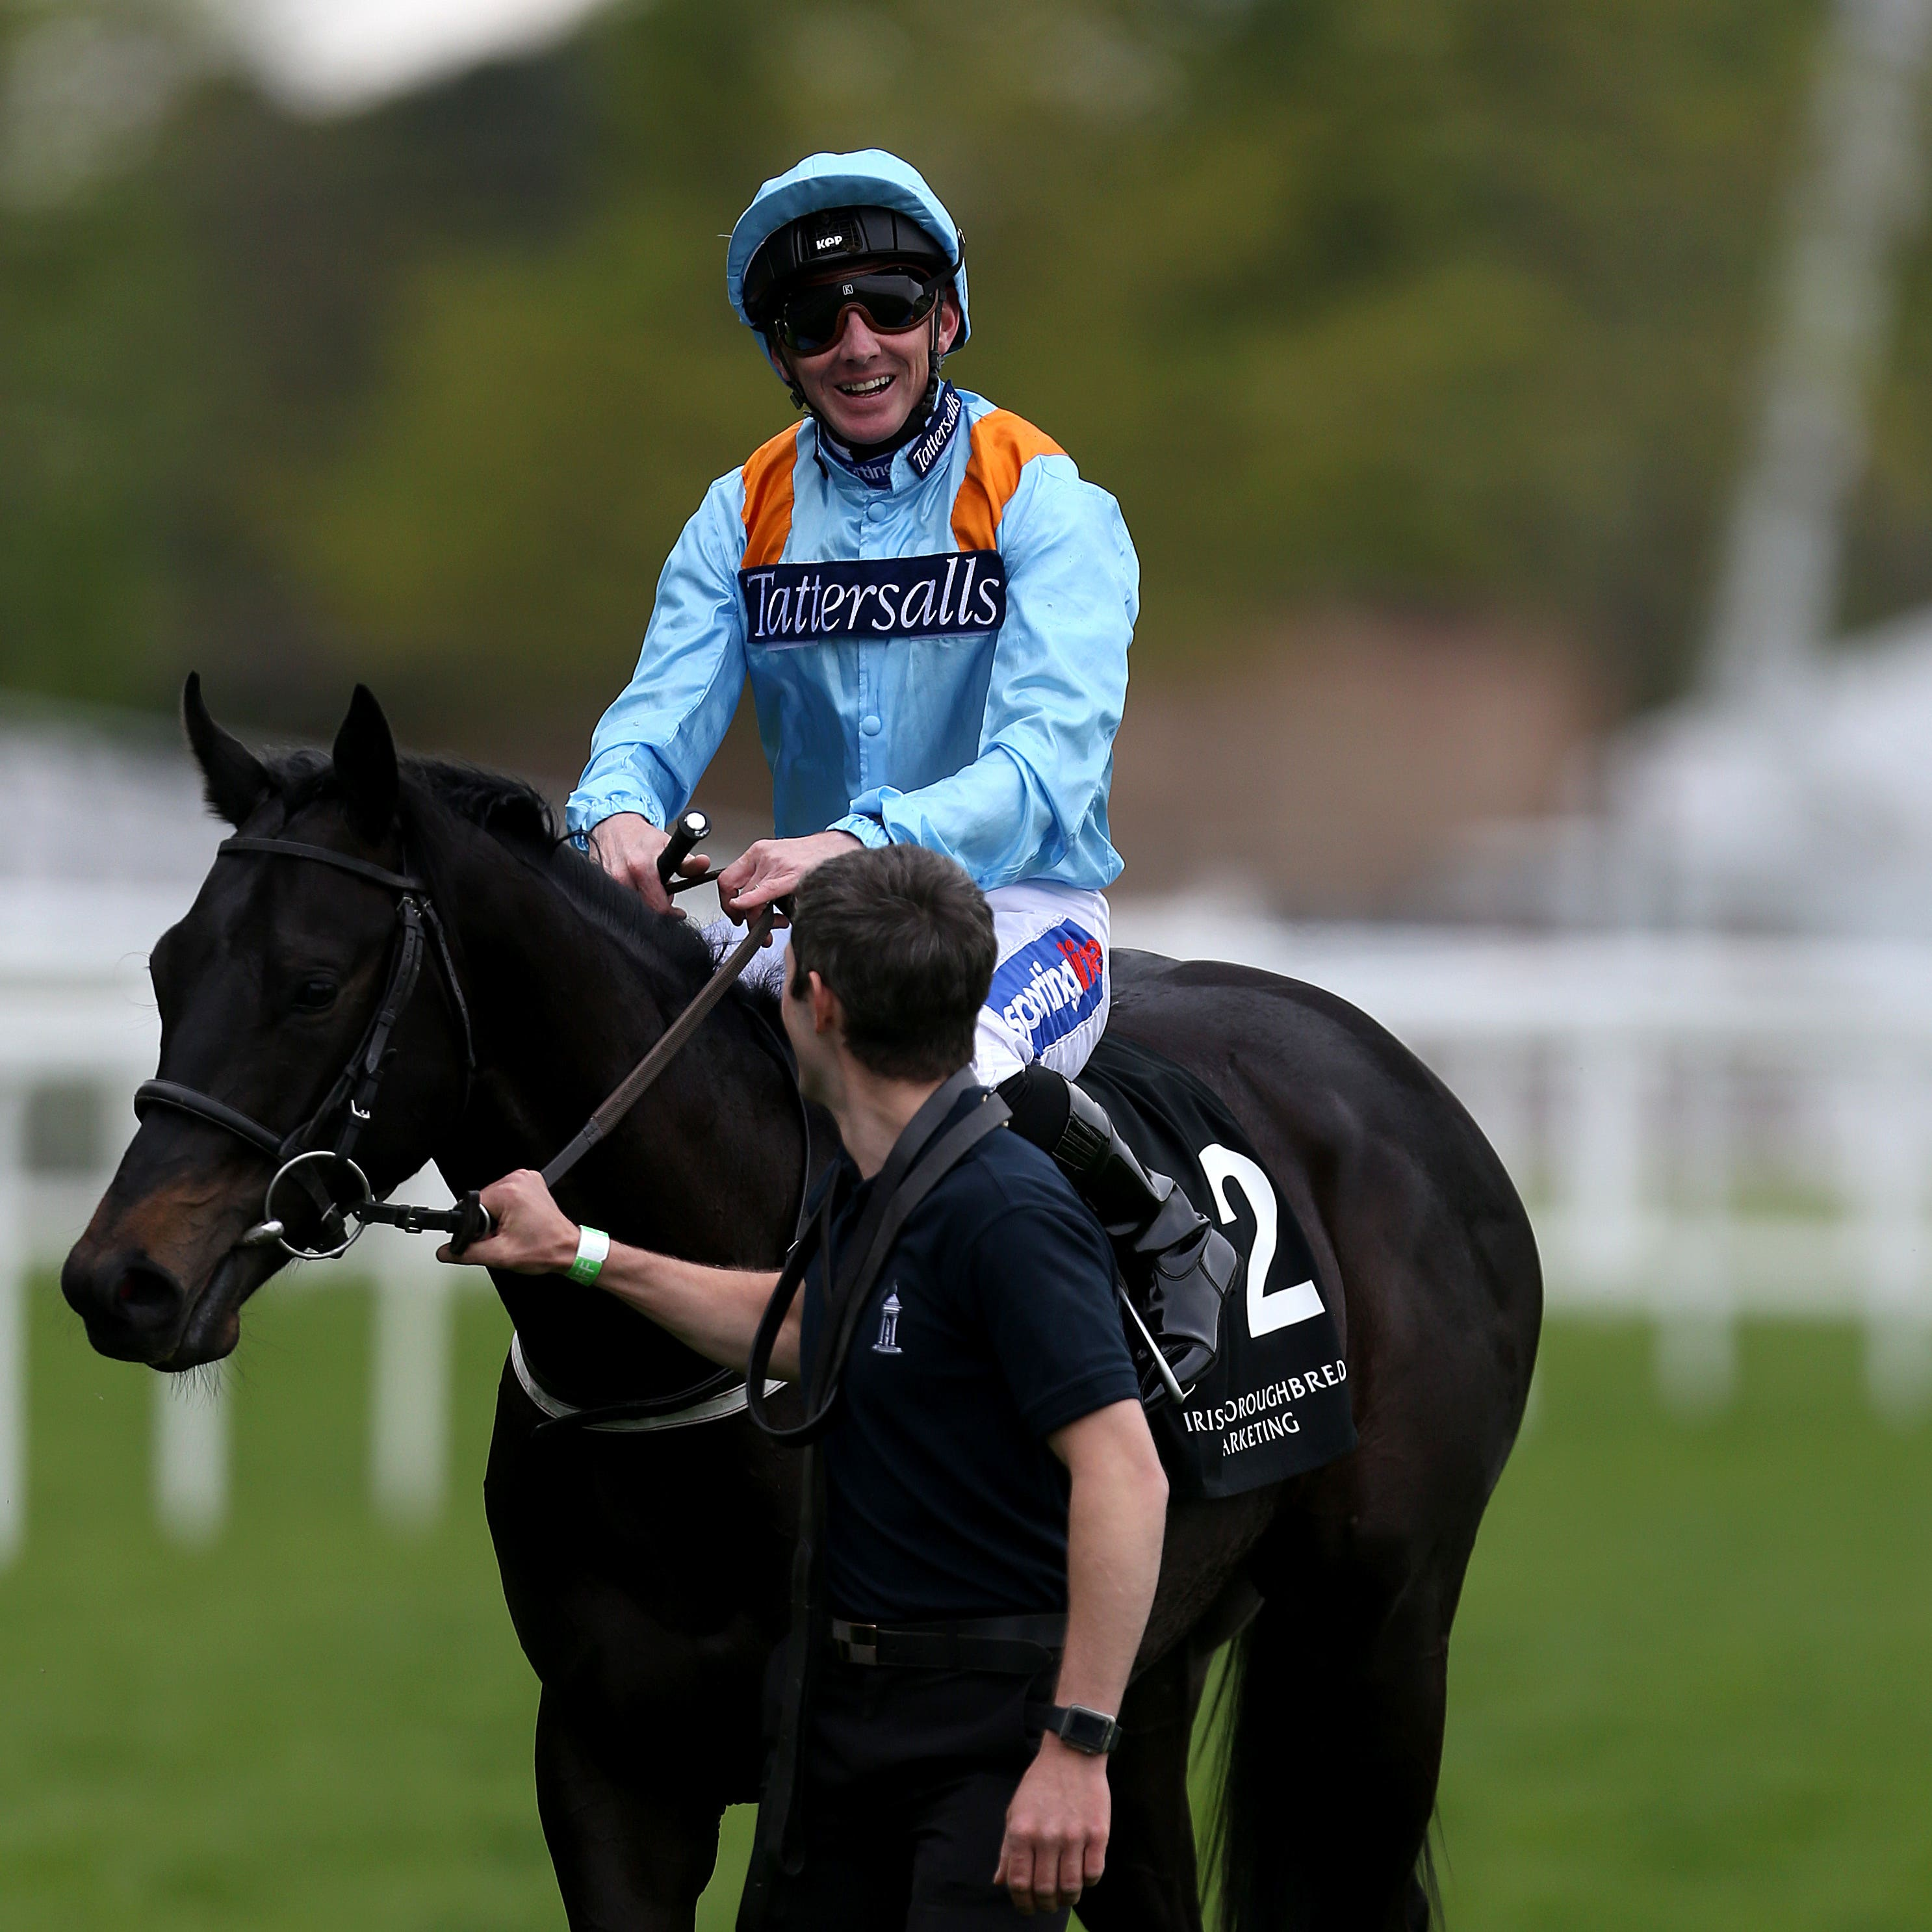 Ventura Rebel will be seen in new silks at Royal Ascot following his purchase in a private deal